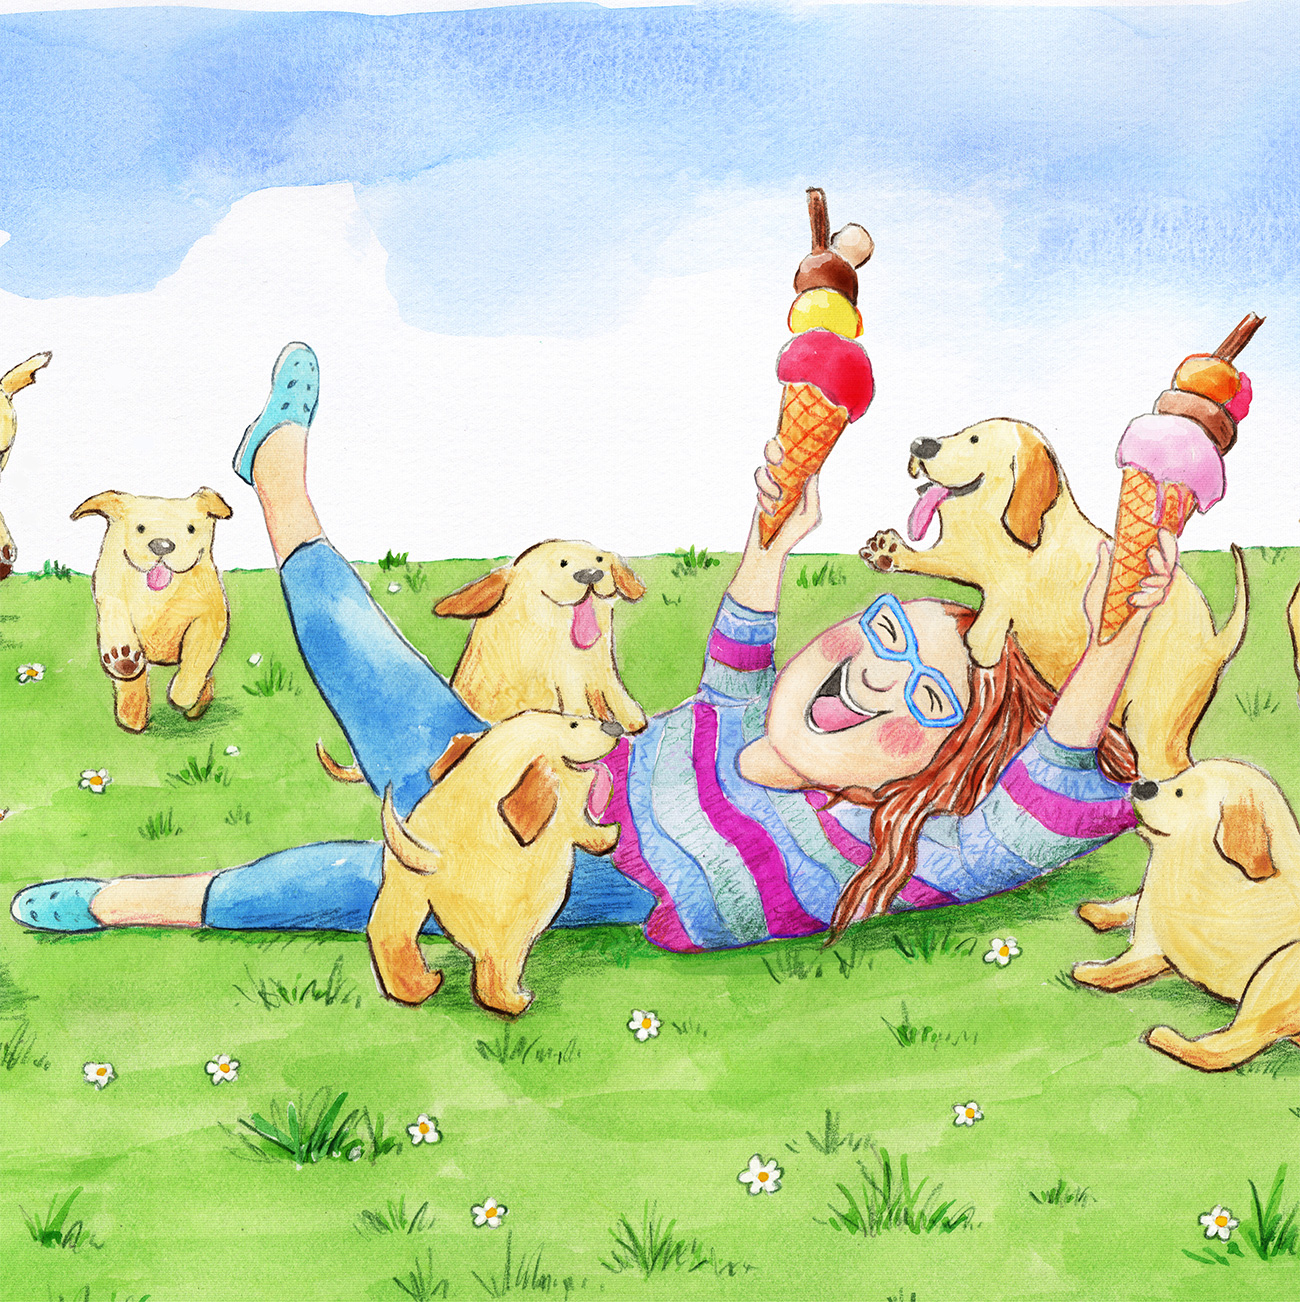 Girl fallen onto grass holding up 2 large icecreams with lots of puppies all around her